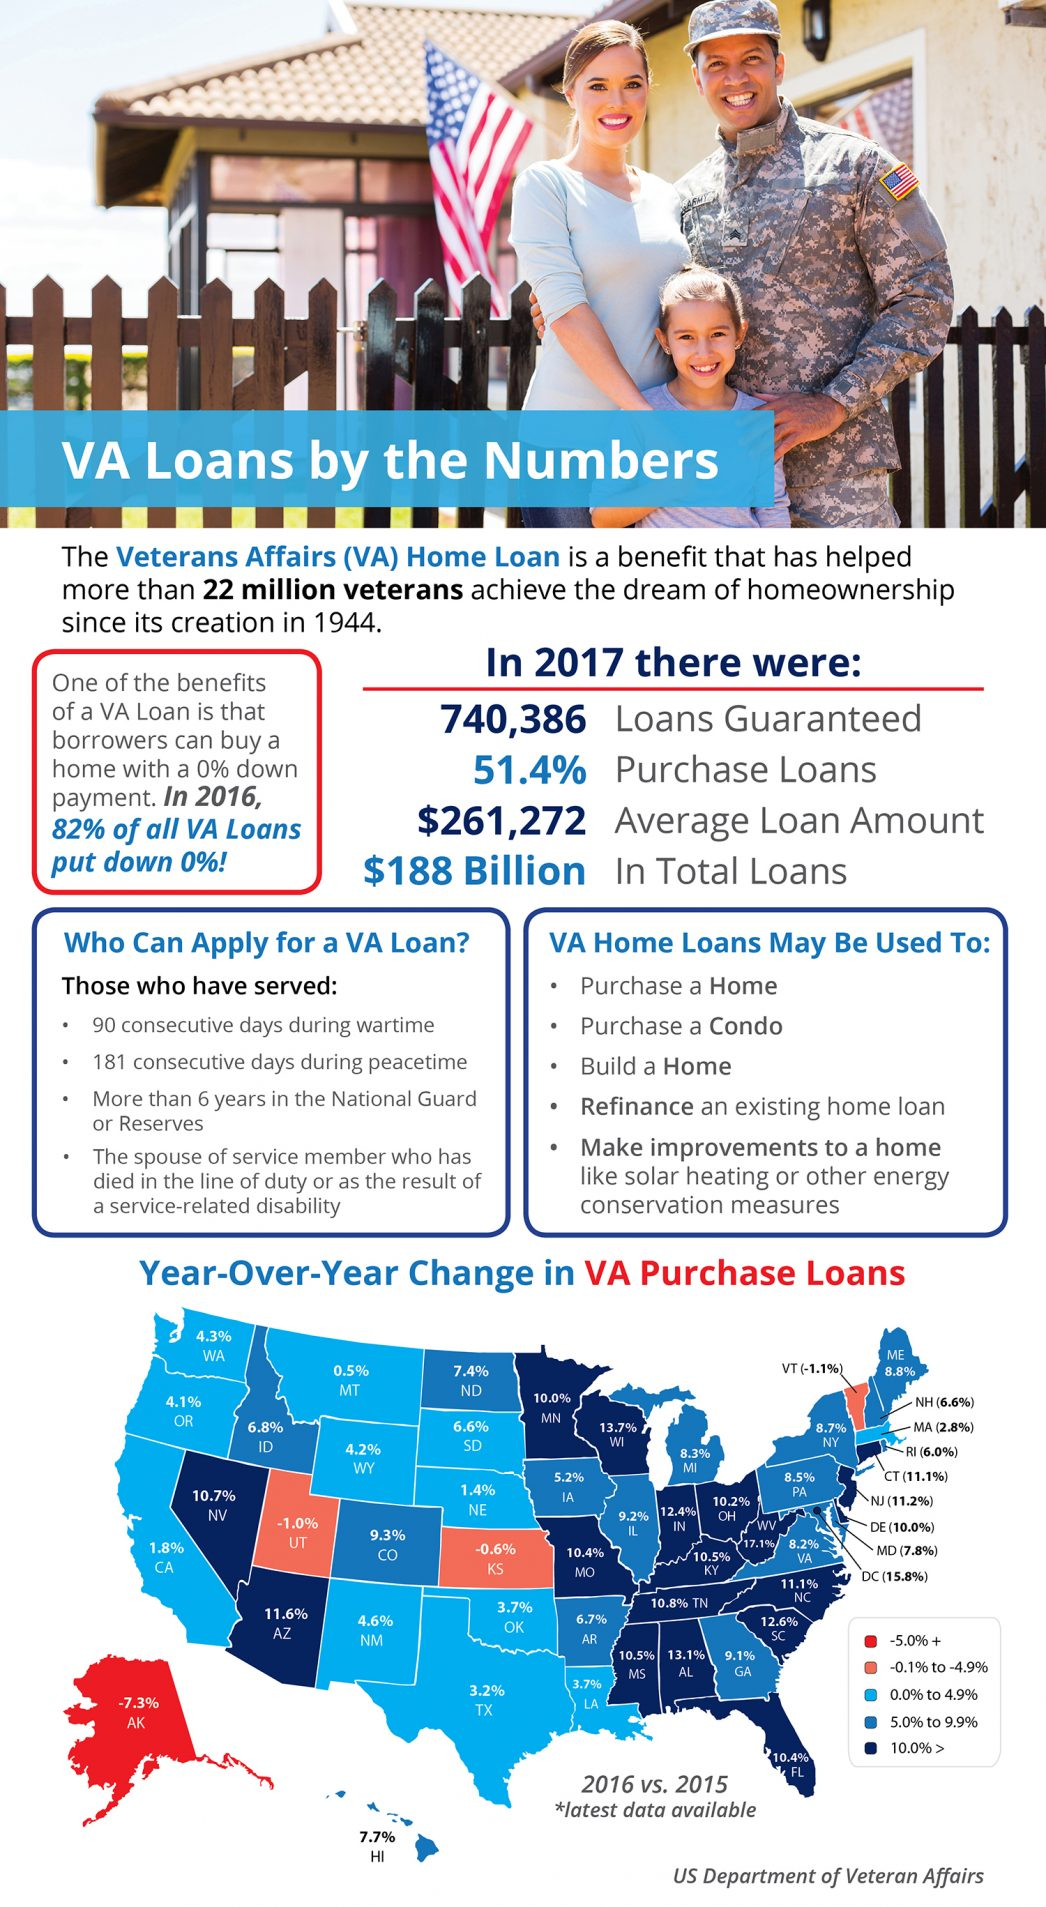 VA Loans by the Numbers [INFOGRAPHIC] | MyKCM